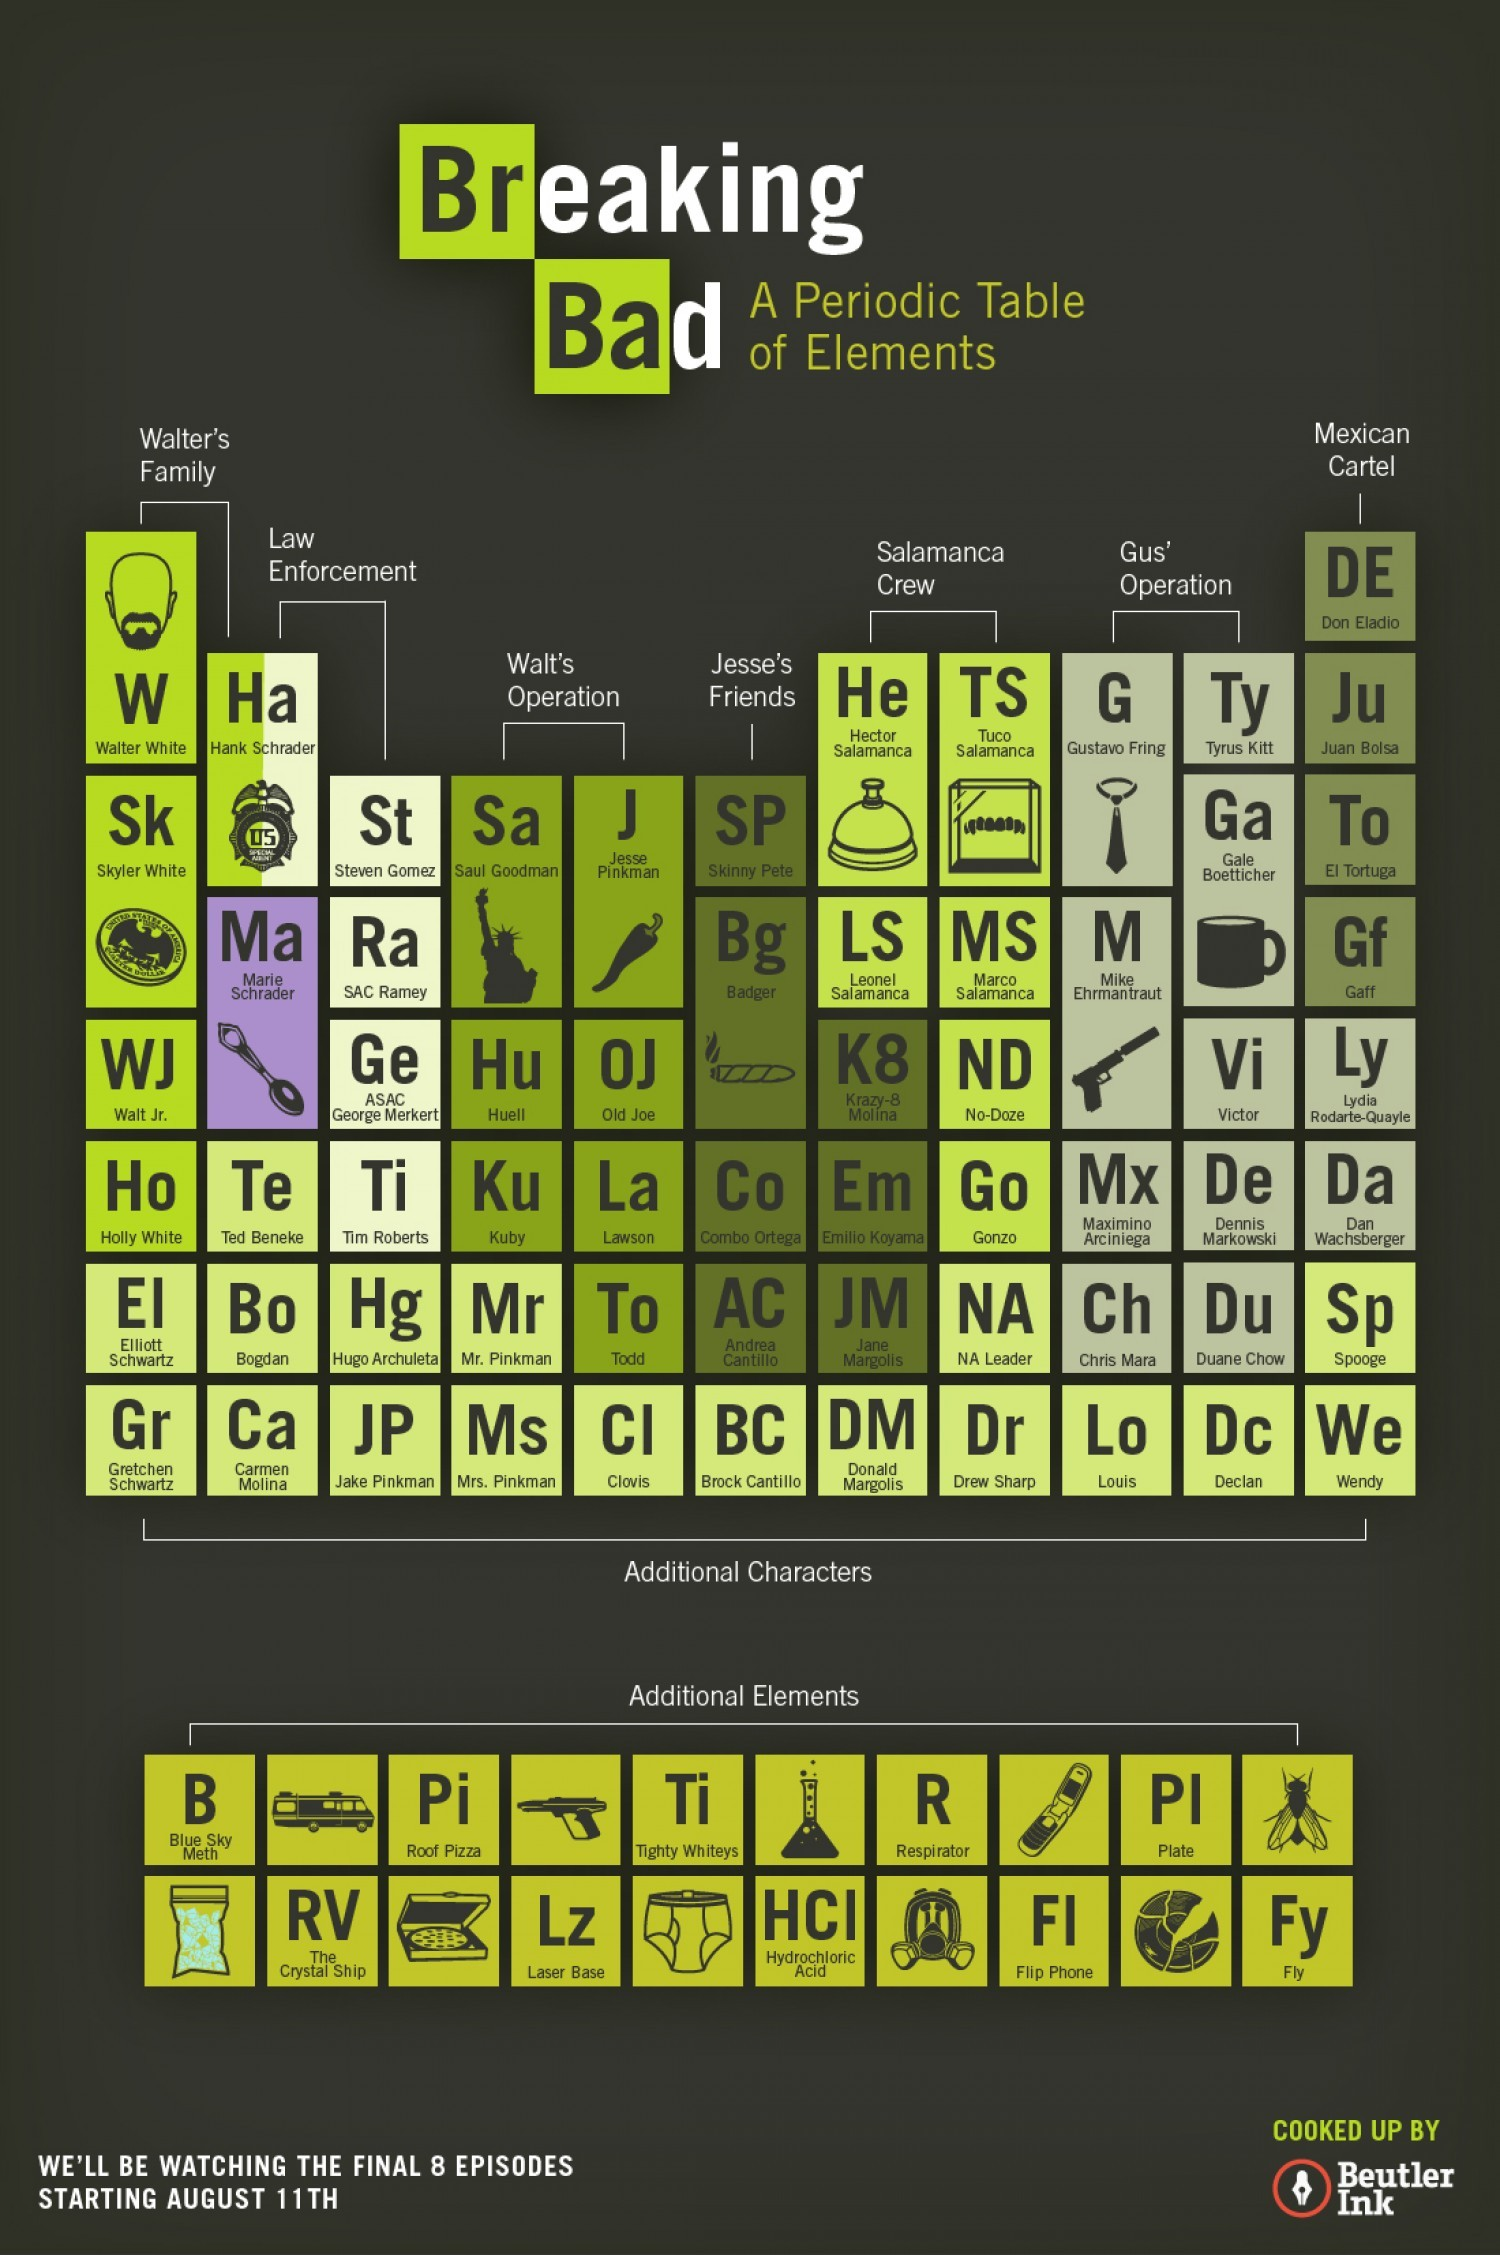 Periodic table wallpaper download free beautiful full hd 1920x1080 urtaz Choice Image